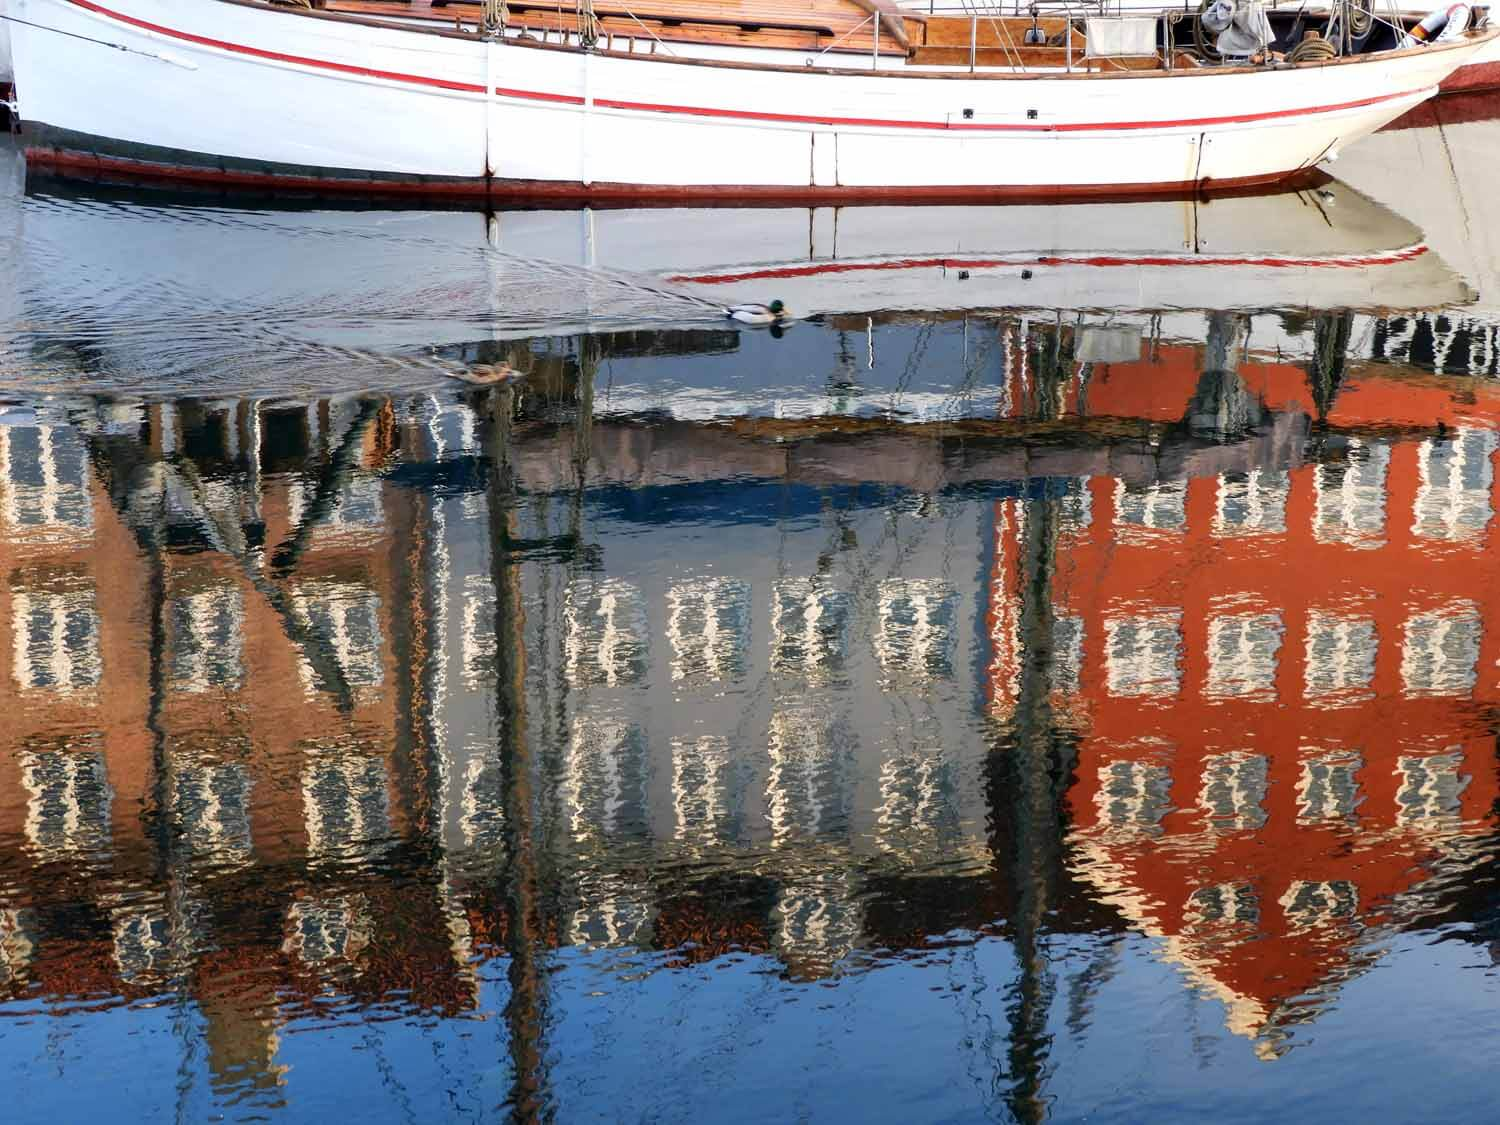 denmark-copenhagen-nyhavn-colorful-houses-reflection-boat.JPG